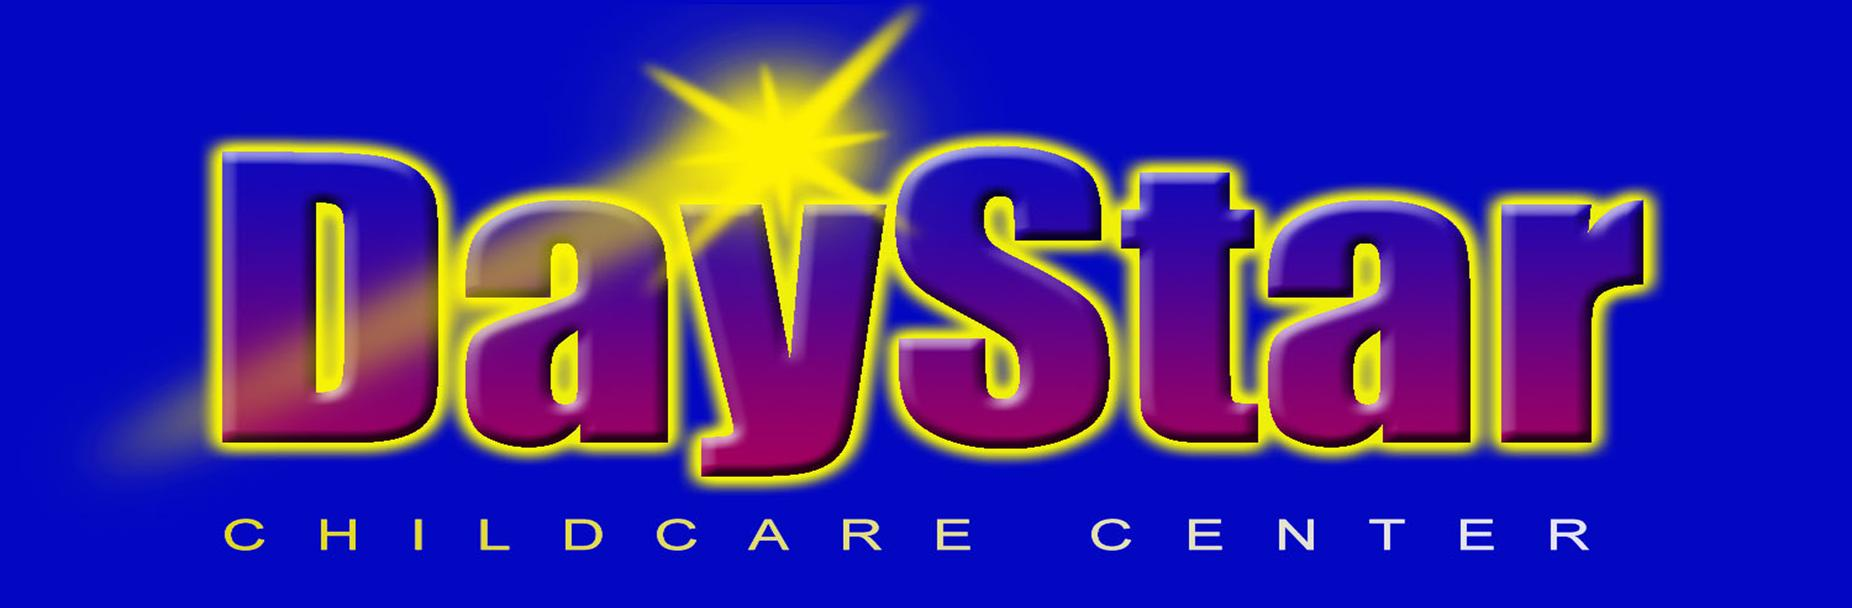 DAYSTAR CHILDCARE